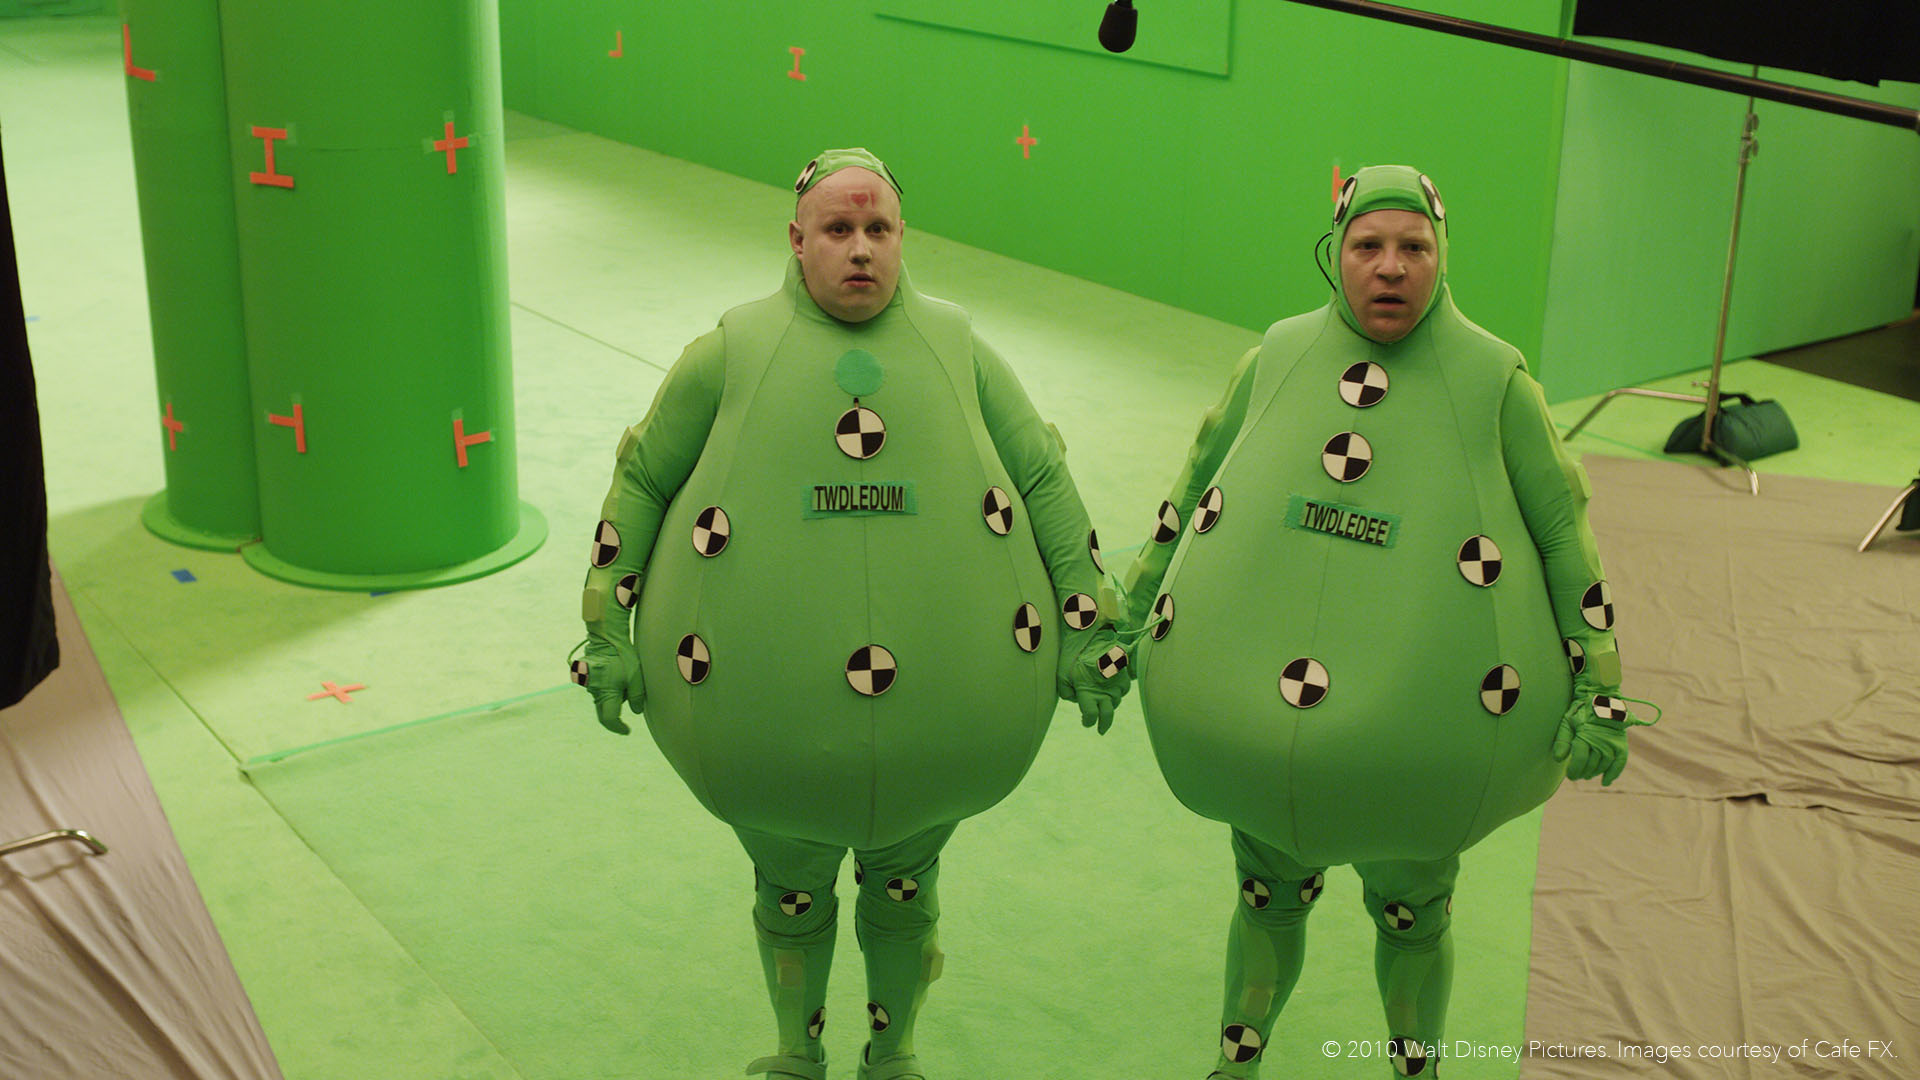 How Matt Lucas became Tweedle Dum and Tweedle Dee from Alice in Wonderland